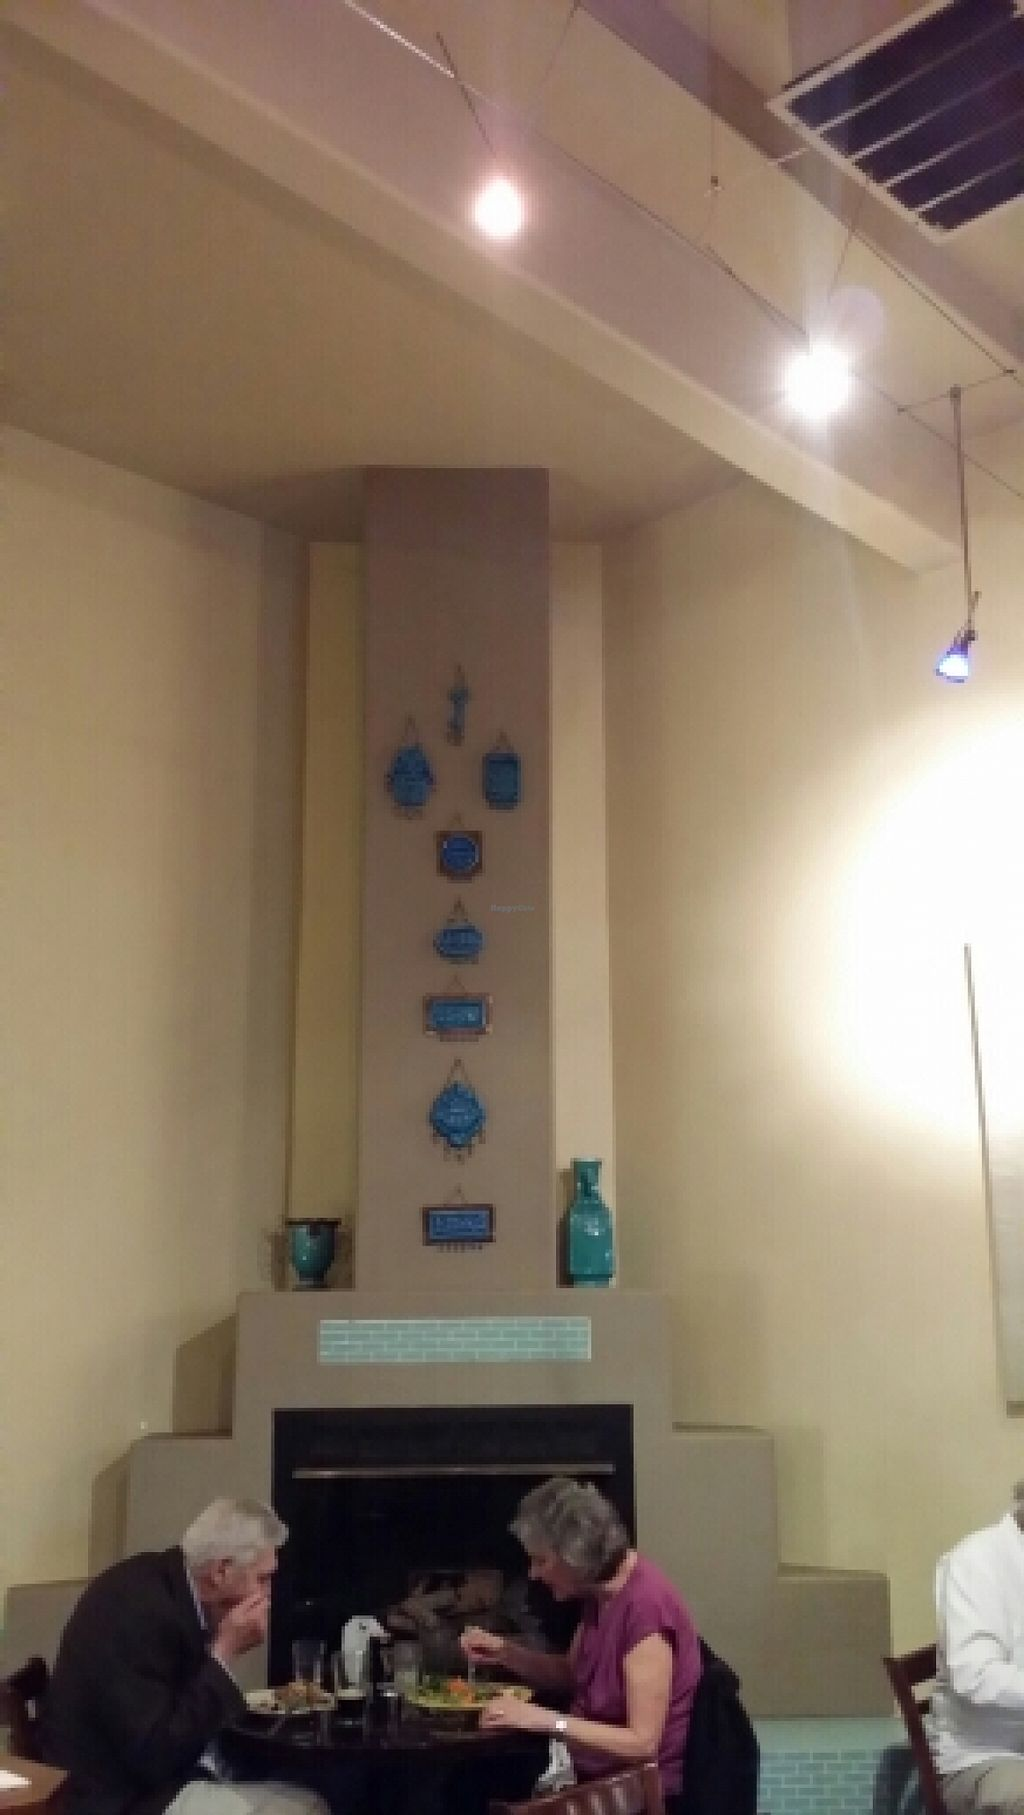 """Photo of East West Cafe  by <a href=""""/members/profile/catbone"""">catbone</a> <br/>Another Wall Display of Prayer Plaques <br/> February 14, 2016  - <a href='/contact/abuse/image/6597/136358'>Report</a>"""